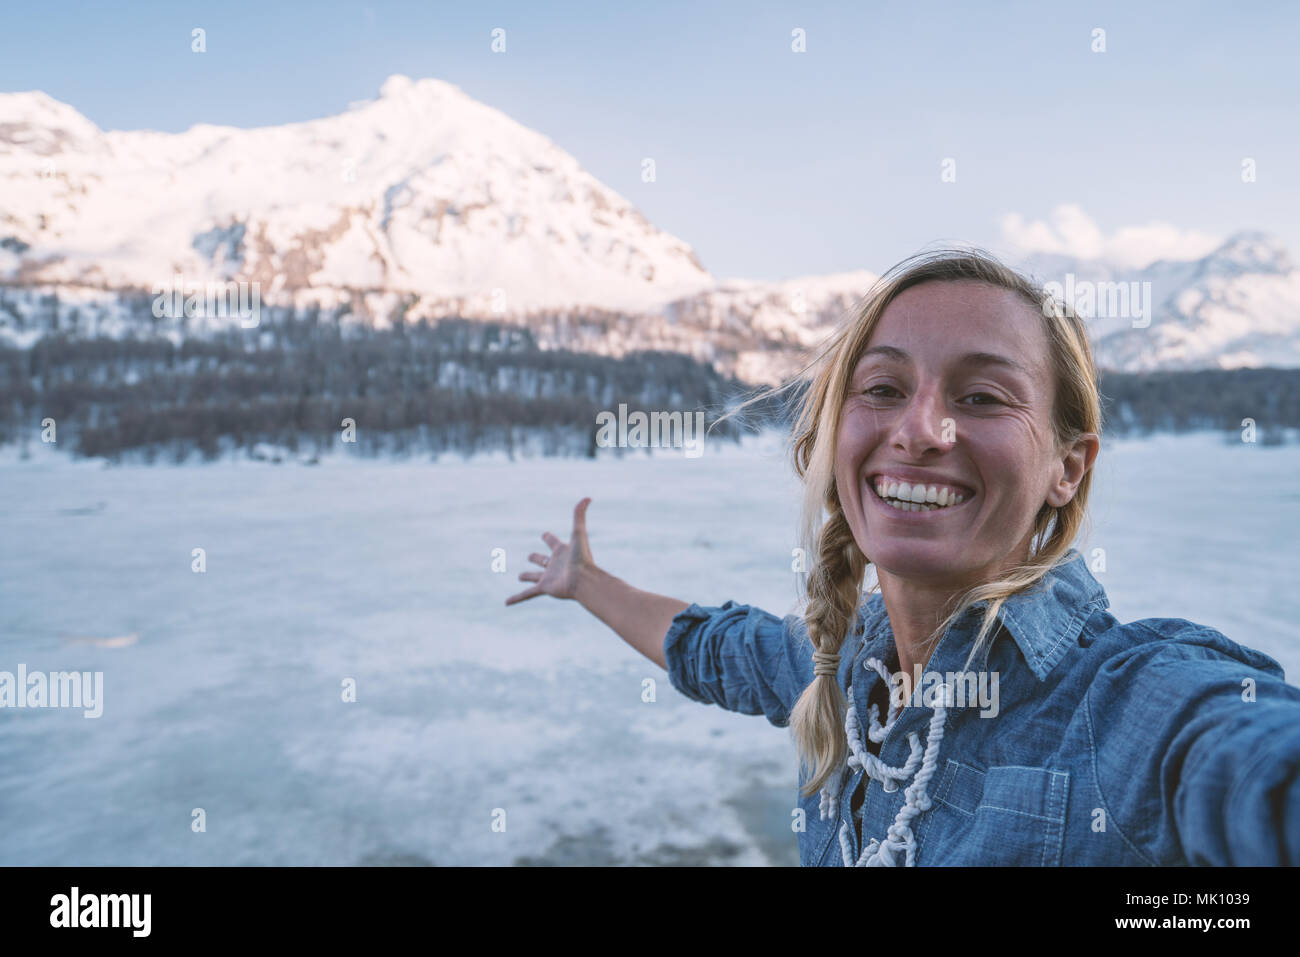 Young woman taking a selfie portrait near a frozen lake with snowcapped mountains on the background at sunset. People travel fun concept, Switzerland. Stock Photo